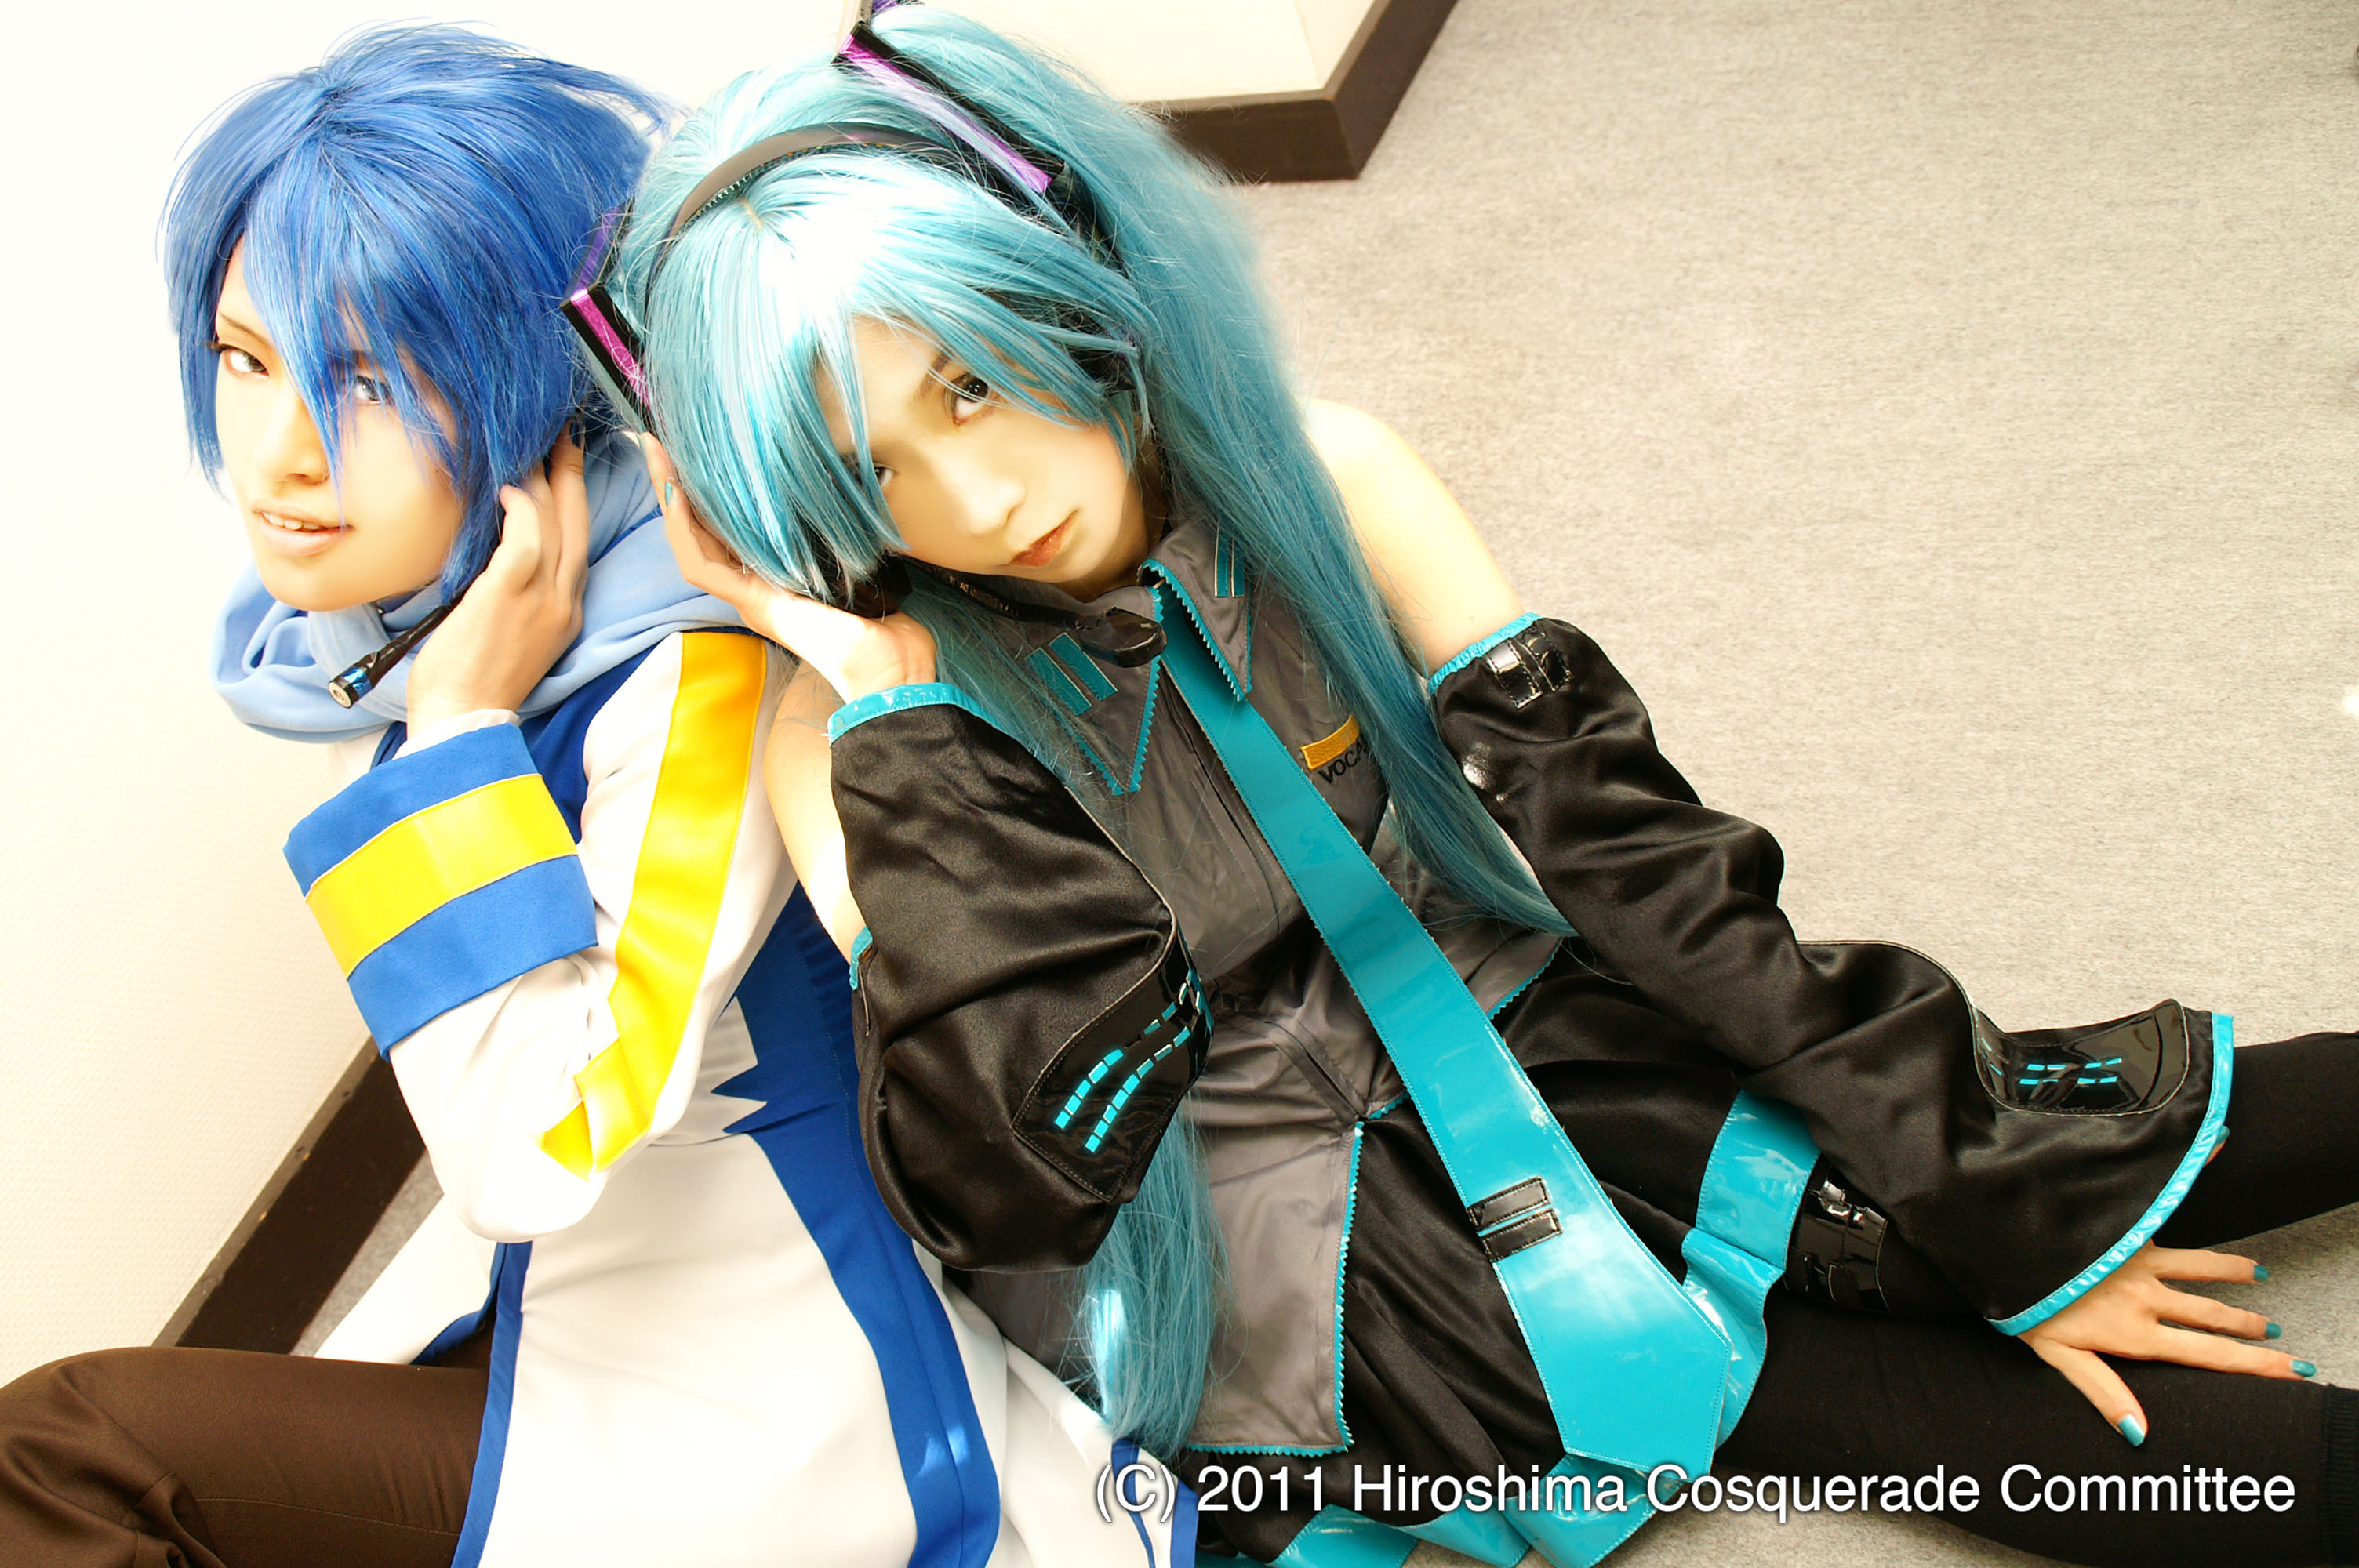 Dress up: Cosplay enthusiasts strike a pose. | HIROSHIMA COSQUERADE COMMITTEE